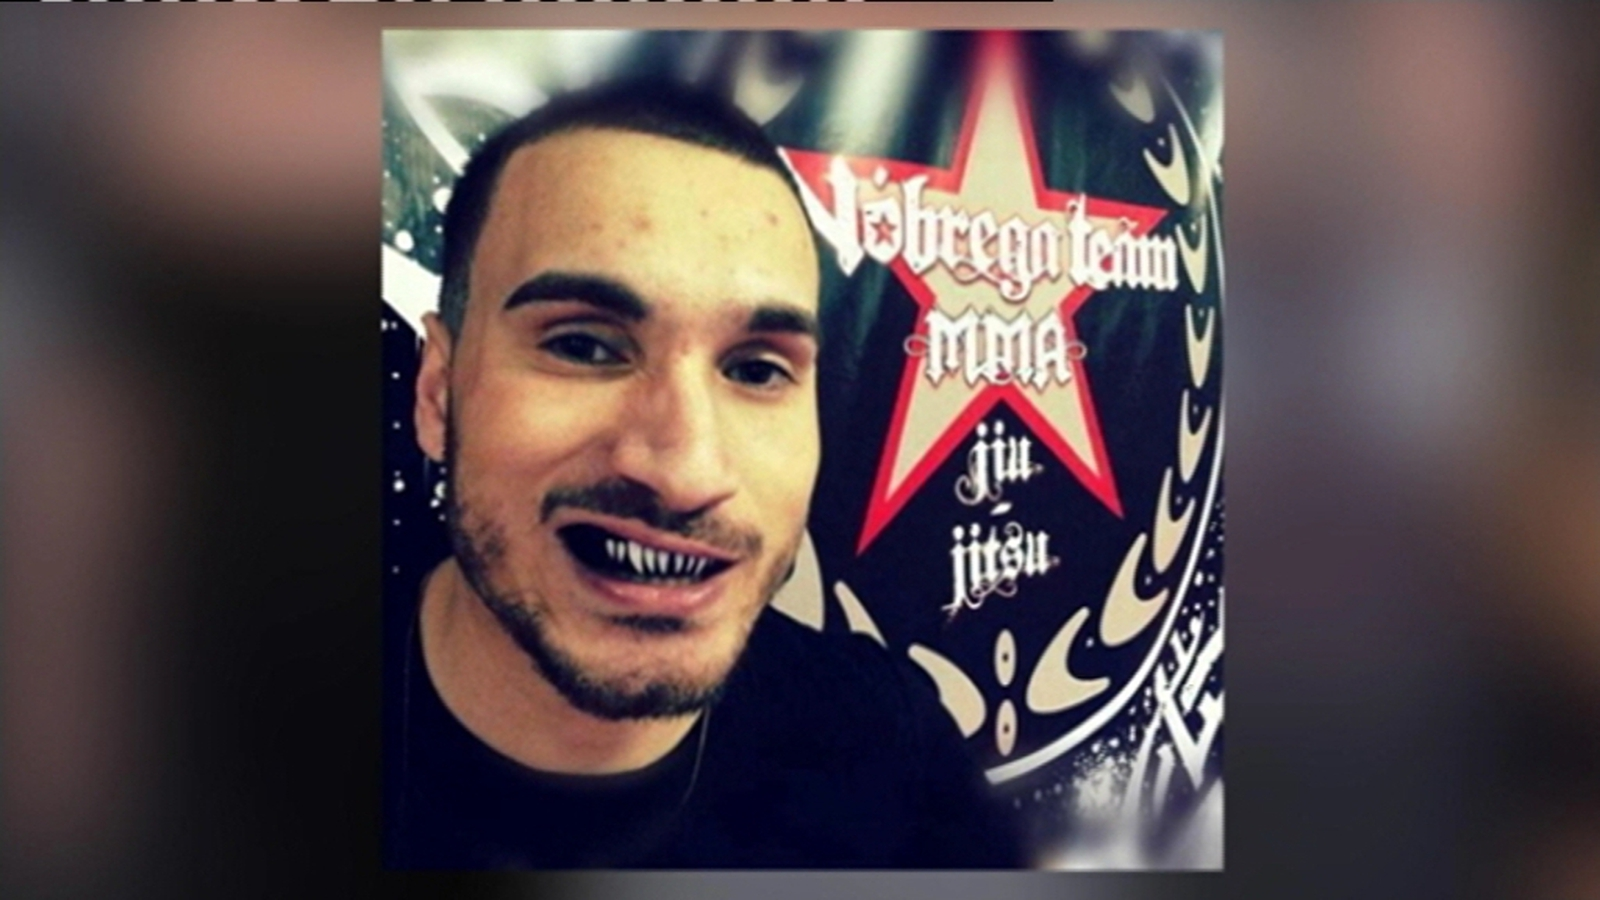 Image - Joao Carvalho died following an MMA event in Dublin